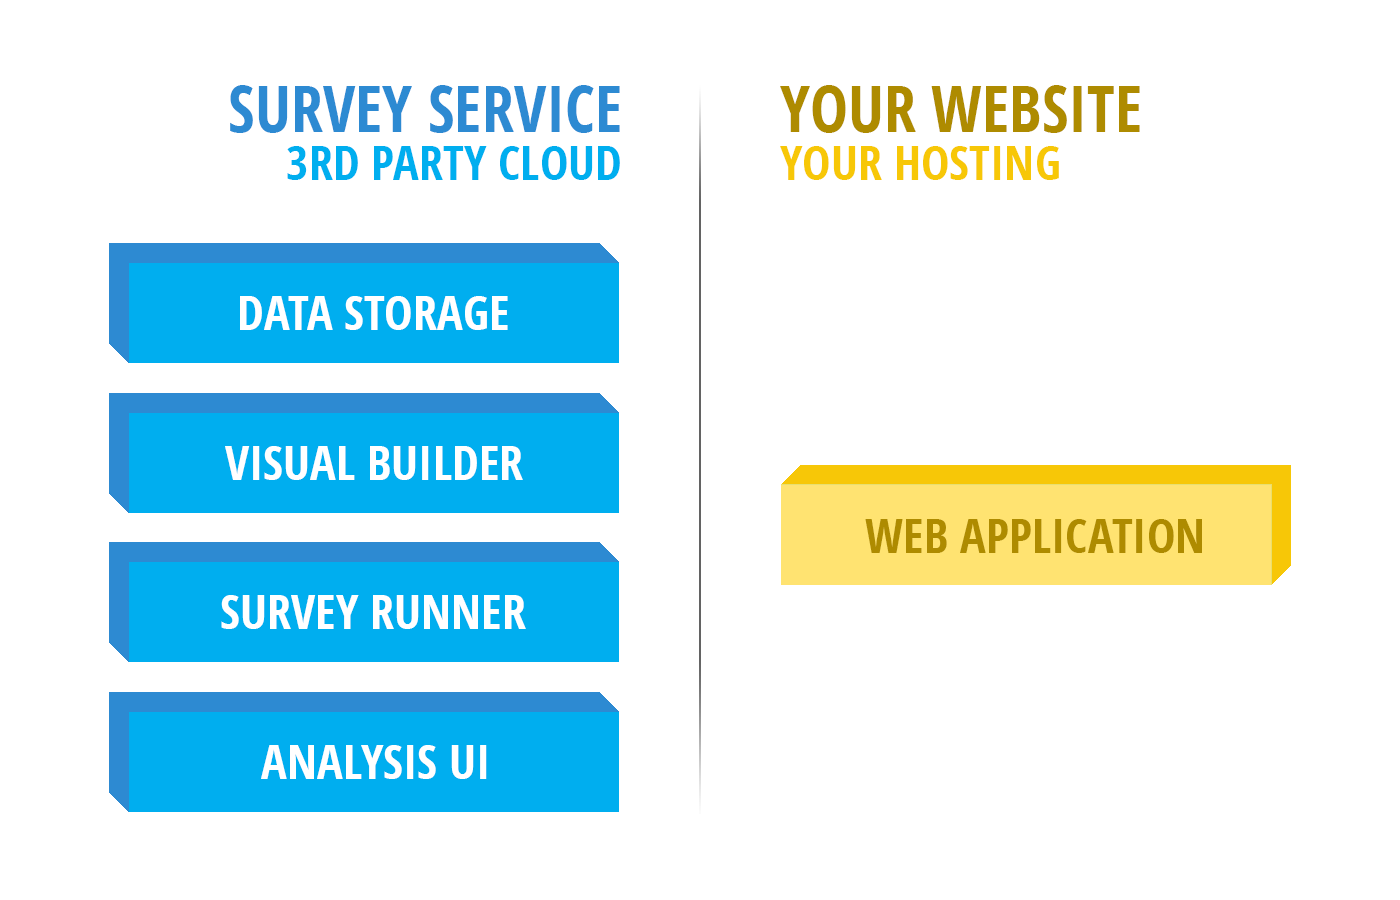 Integrate the Entire Survey Life-cycle into Your Web Application - By